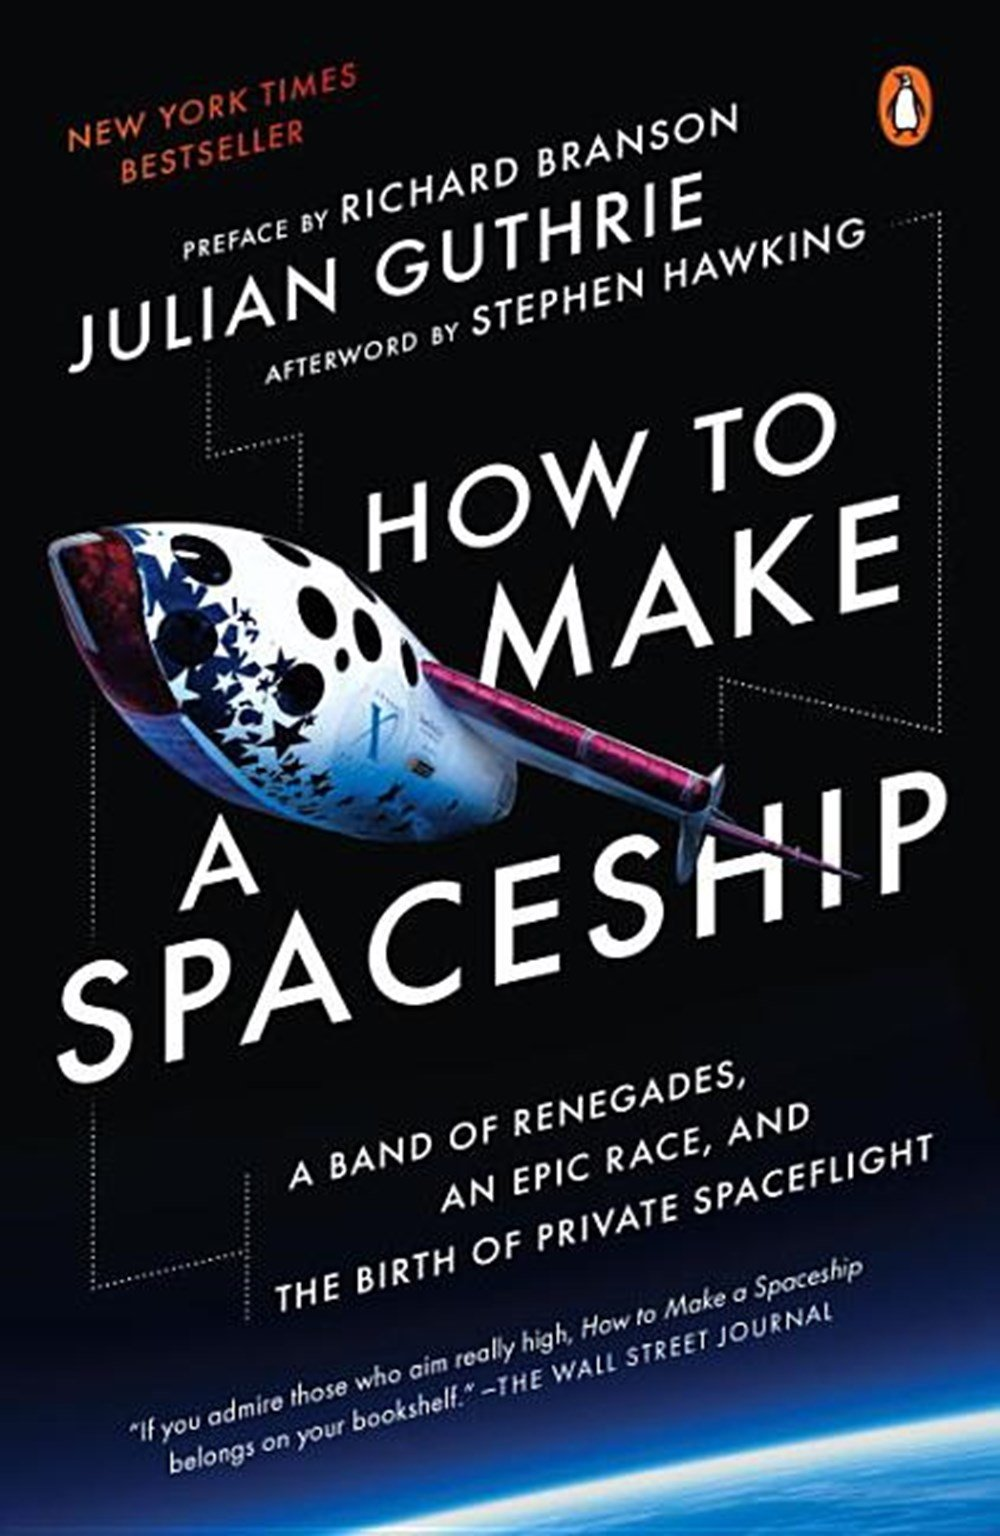 How to Make a Spaceship A Band of Renegades, an Epic Race, and the Birth of Private Spaceflight